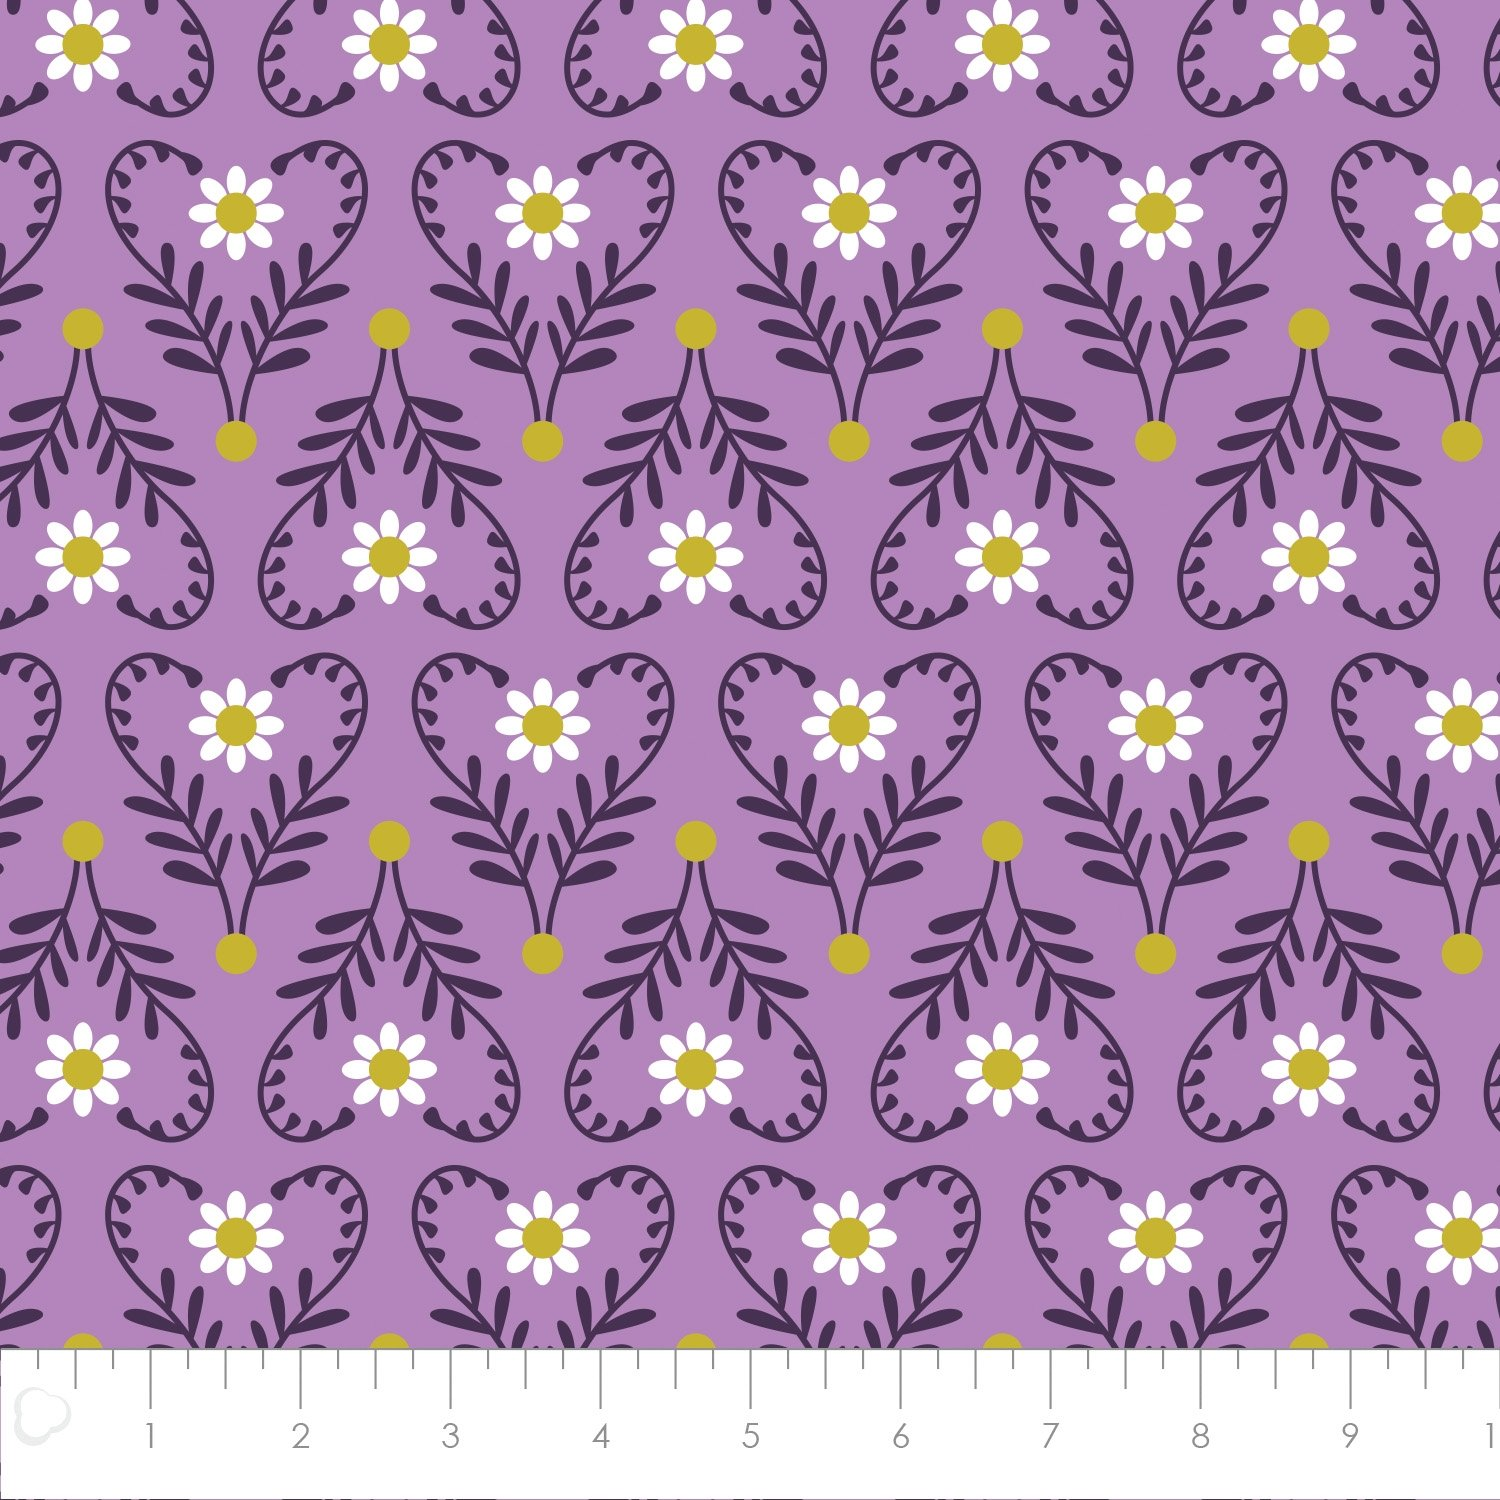 *SPRING BIRDS//WILD AT HEART//PURPLE//SHIRLEY COPPERWHITE//CAMELOT